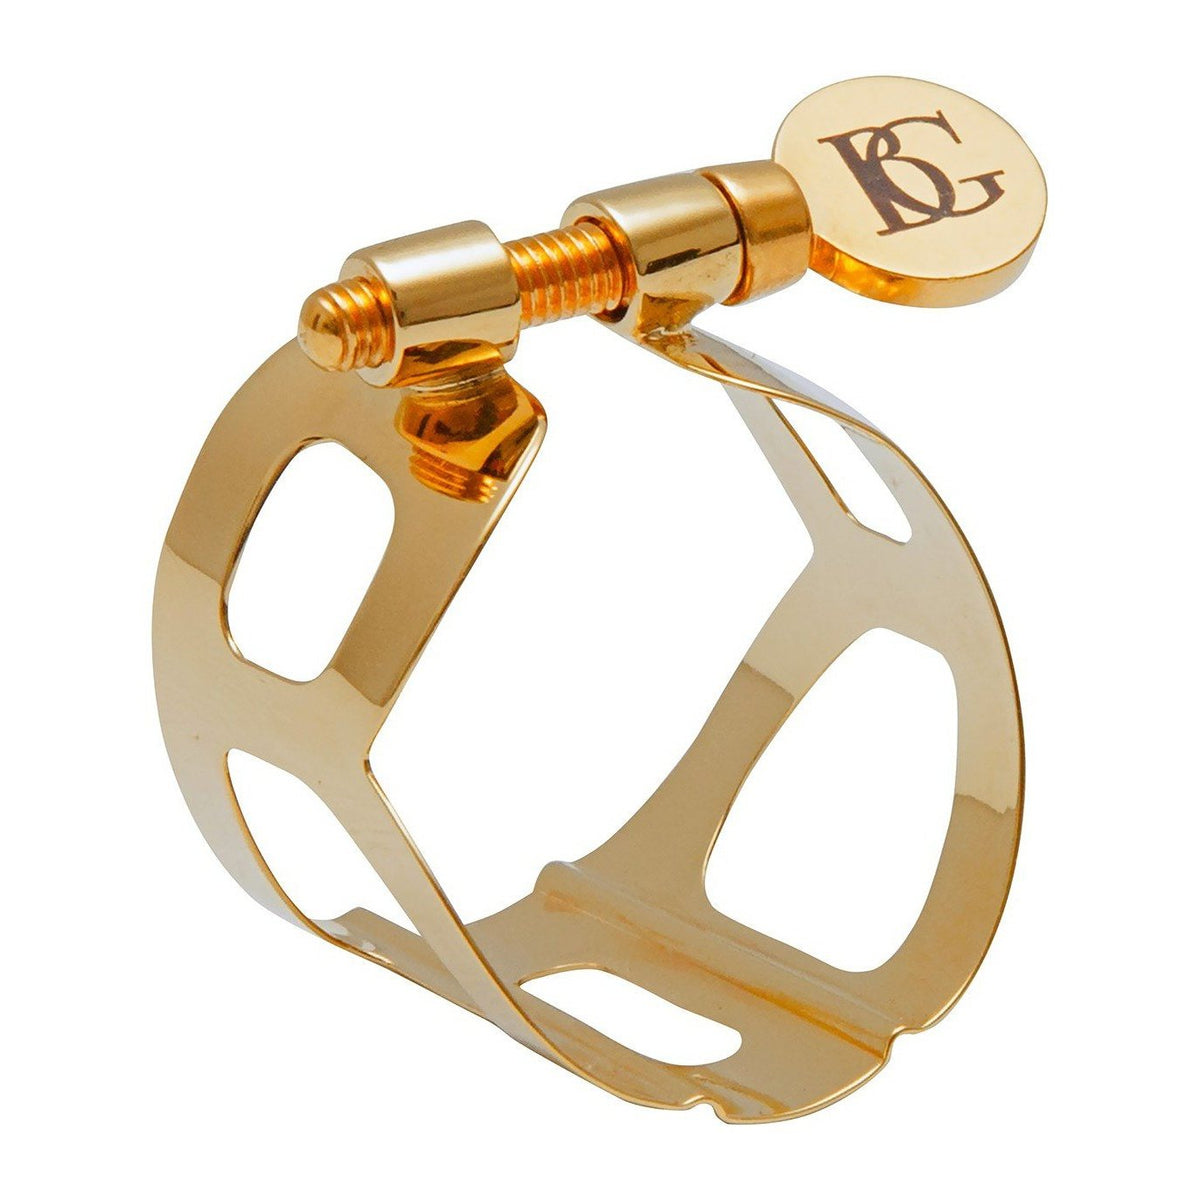 BG France - Tradition Ligatures for Soprano Saxophone-Ligature-BG France-Gold Plated-Music Elements